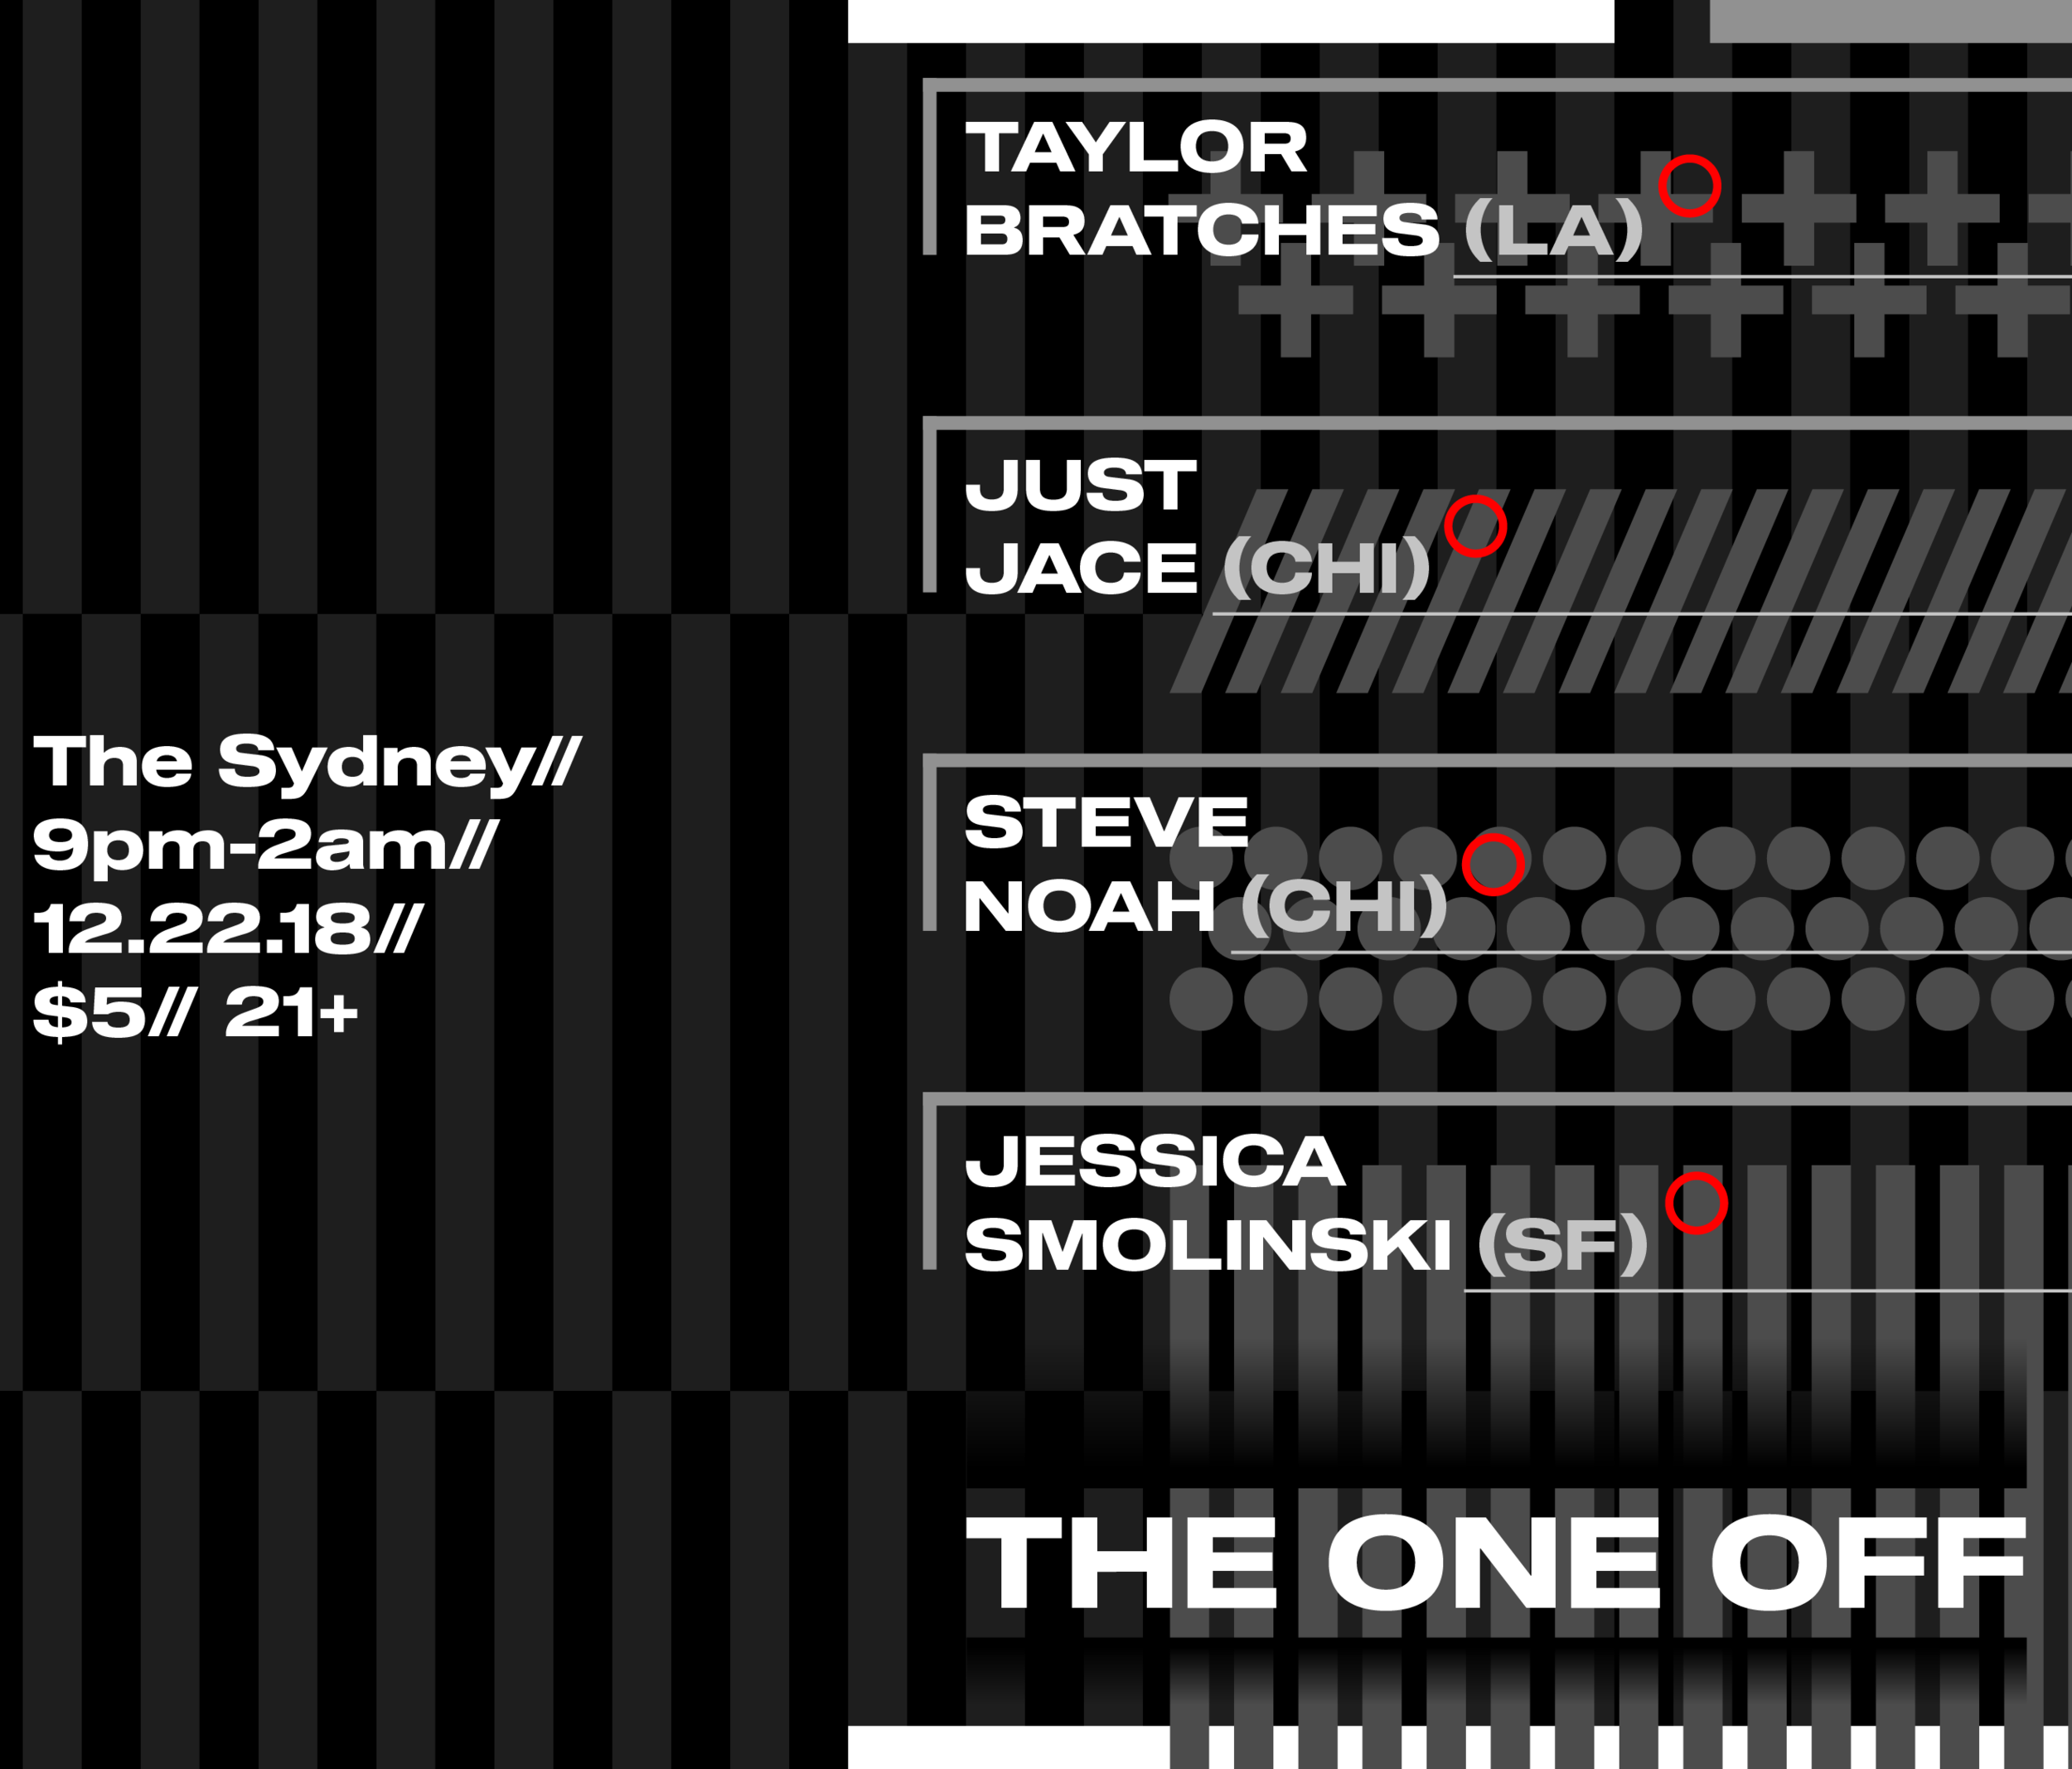 The One Off - Taylor Bratches - Event Photo-01.png